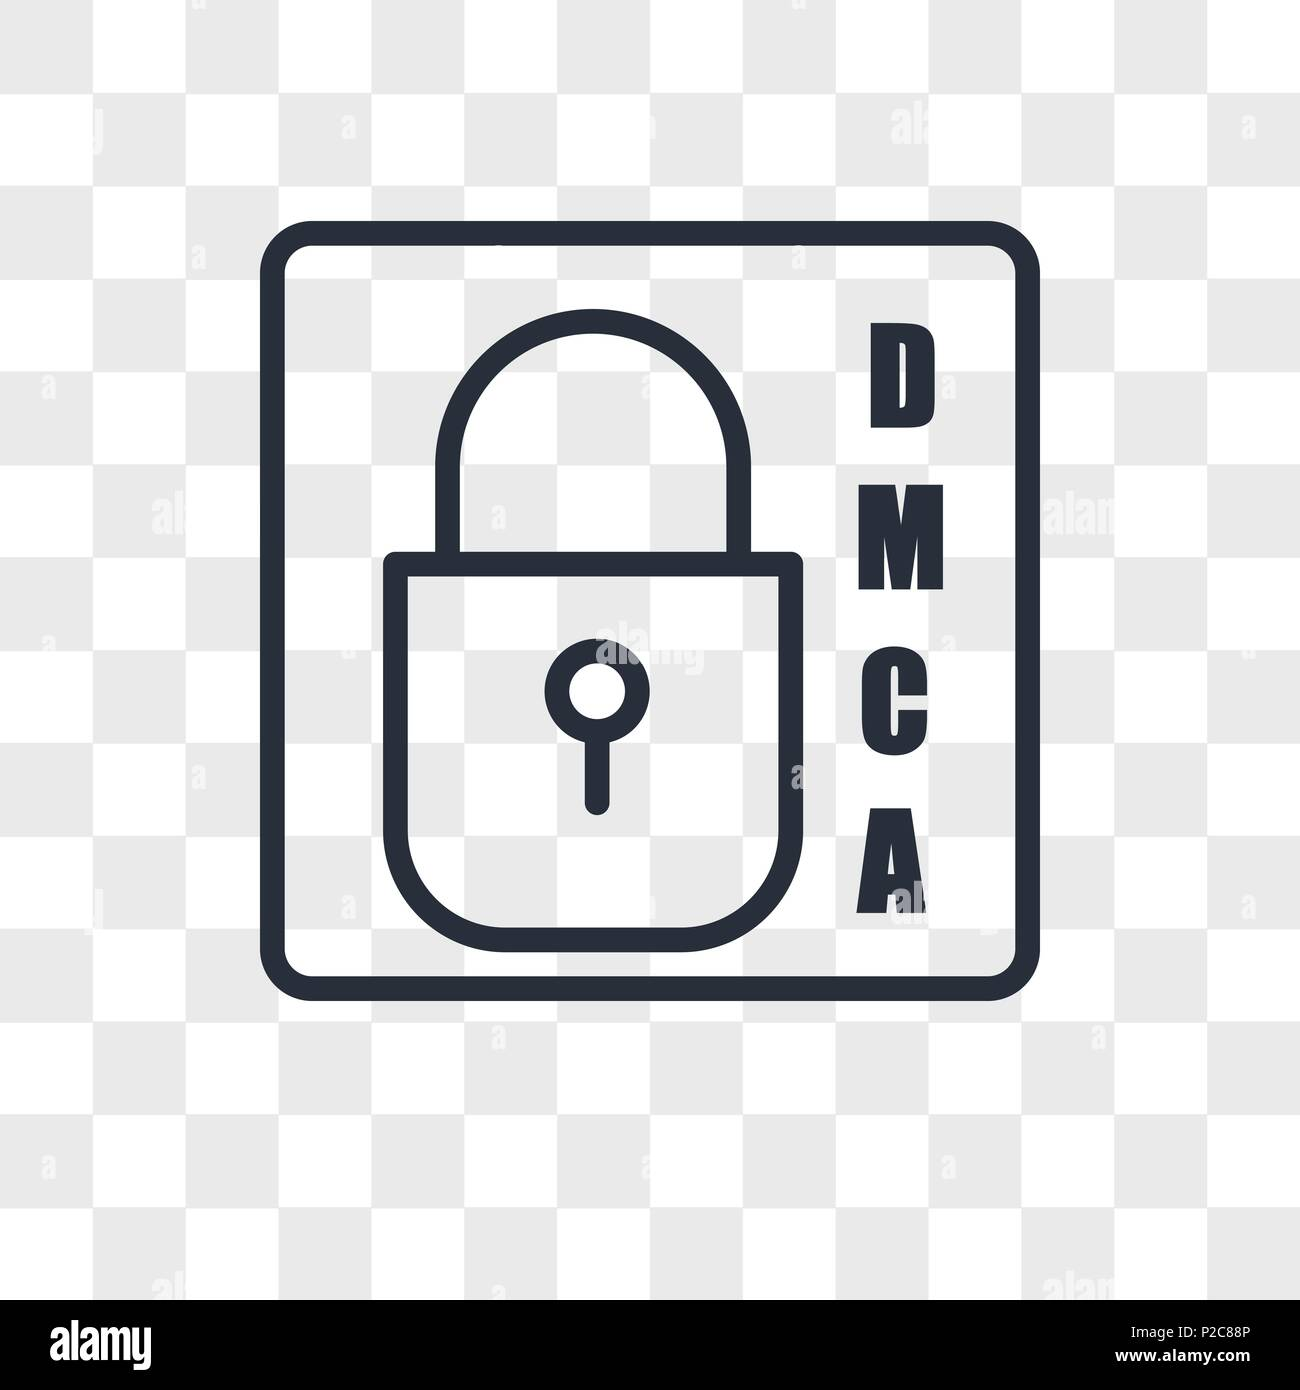 dmca vector icon isolated on transparent background, dmca logo concept